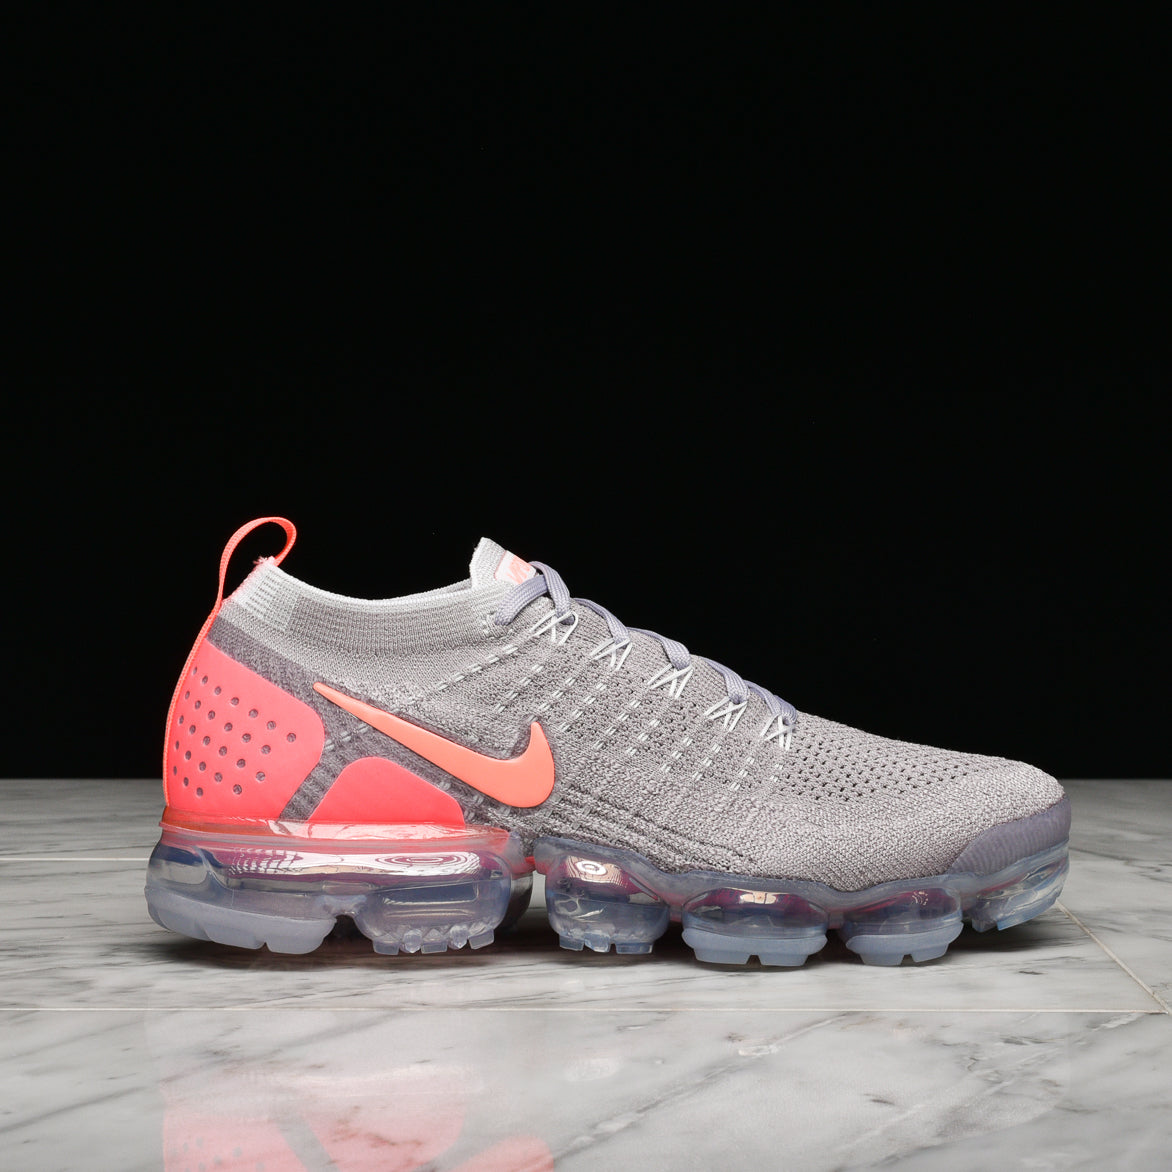 8519b468ad2e WMNS AIR VAPORMAX FLYKNIT 2 - ATMOSPHERE GREY